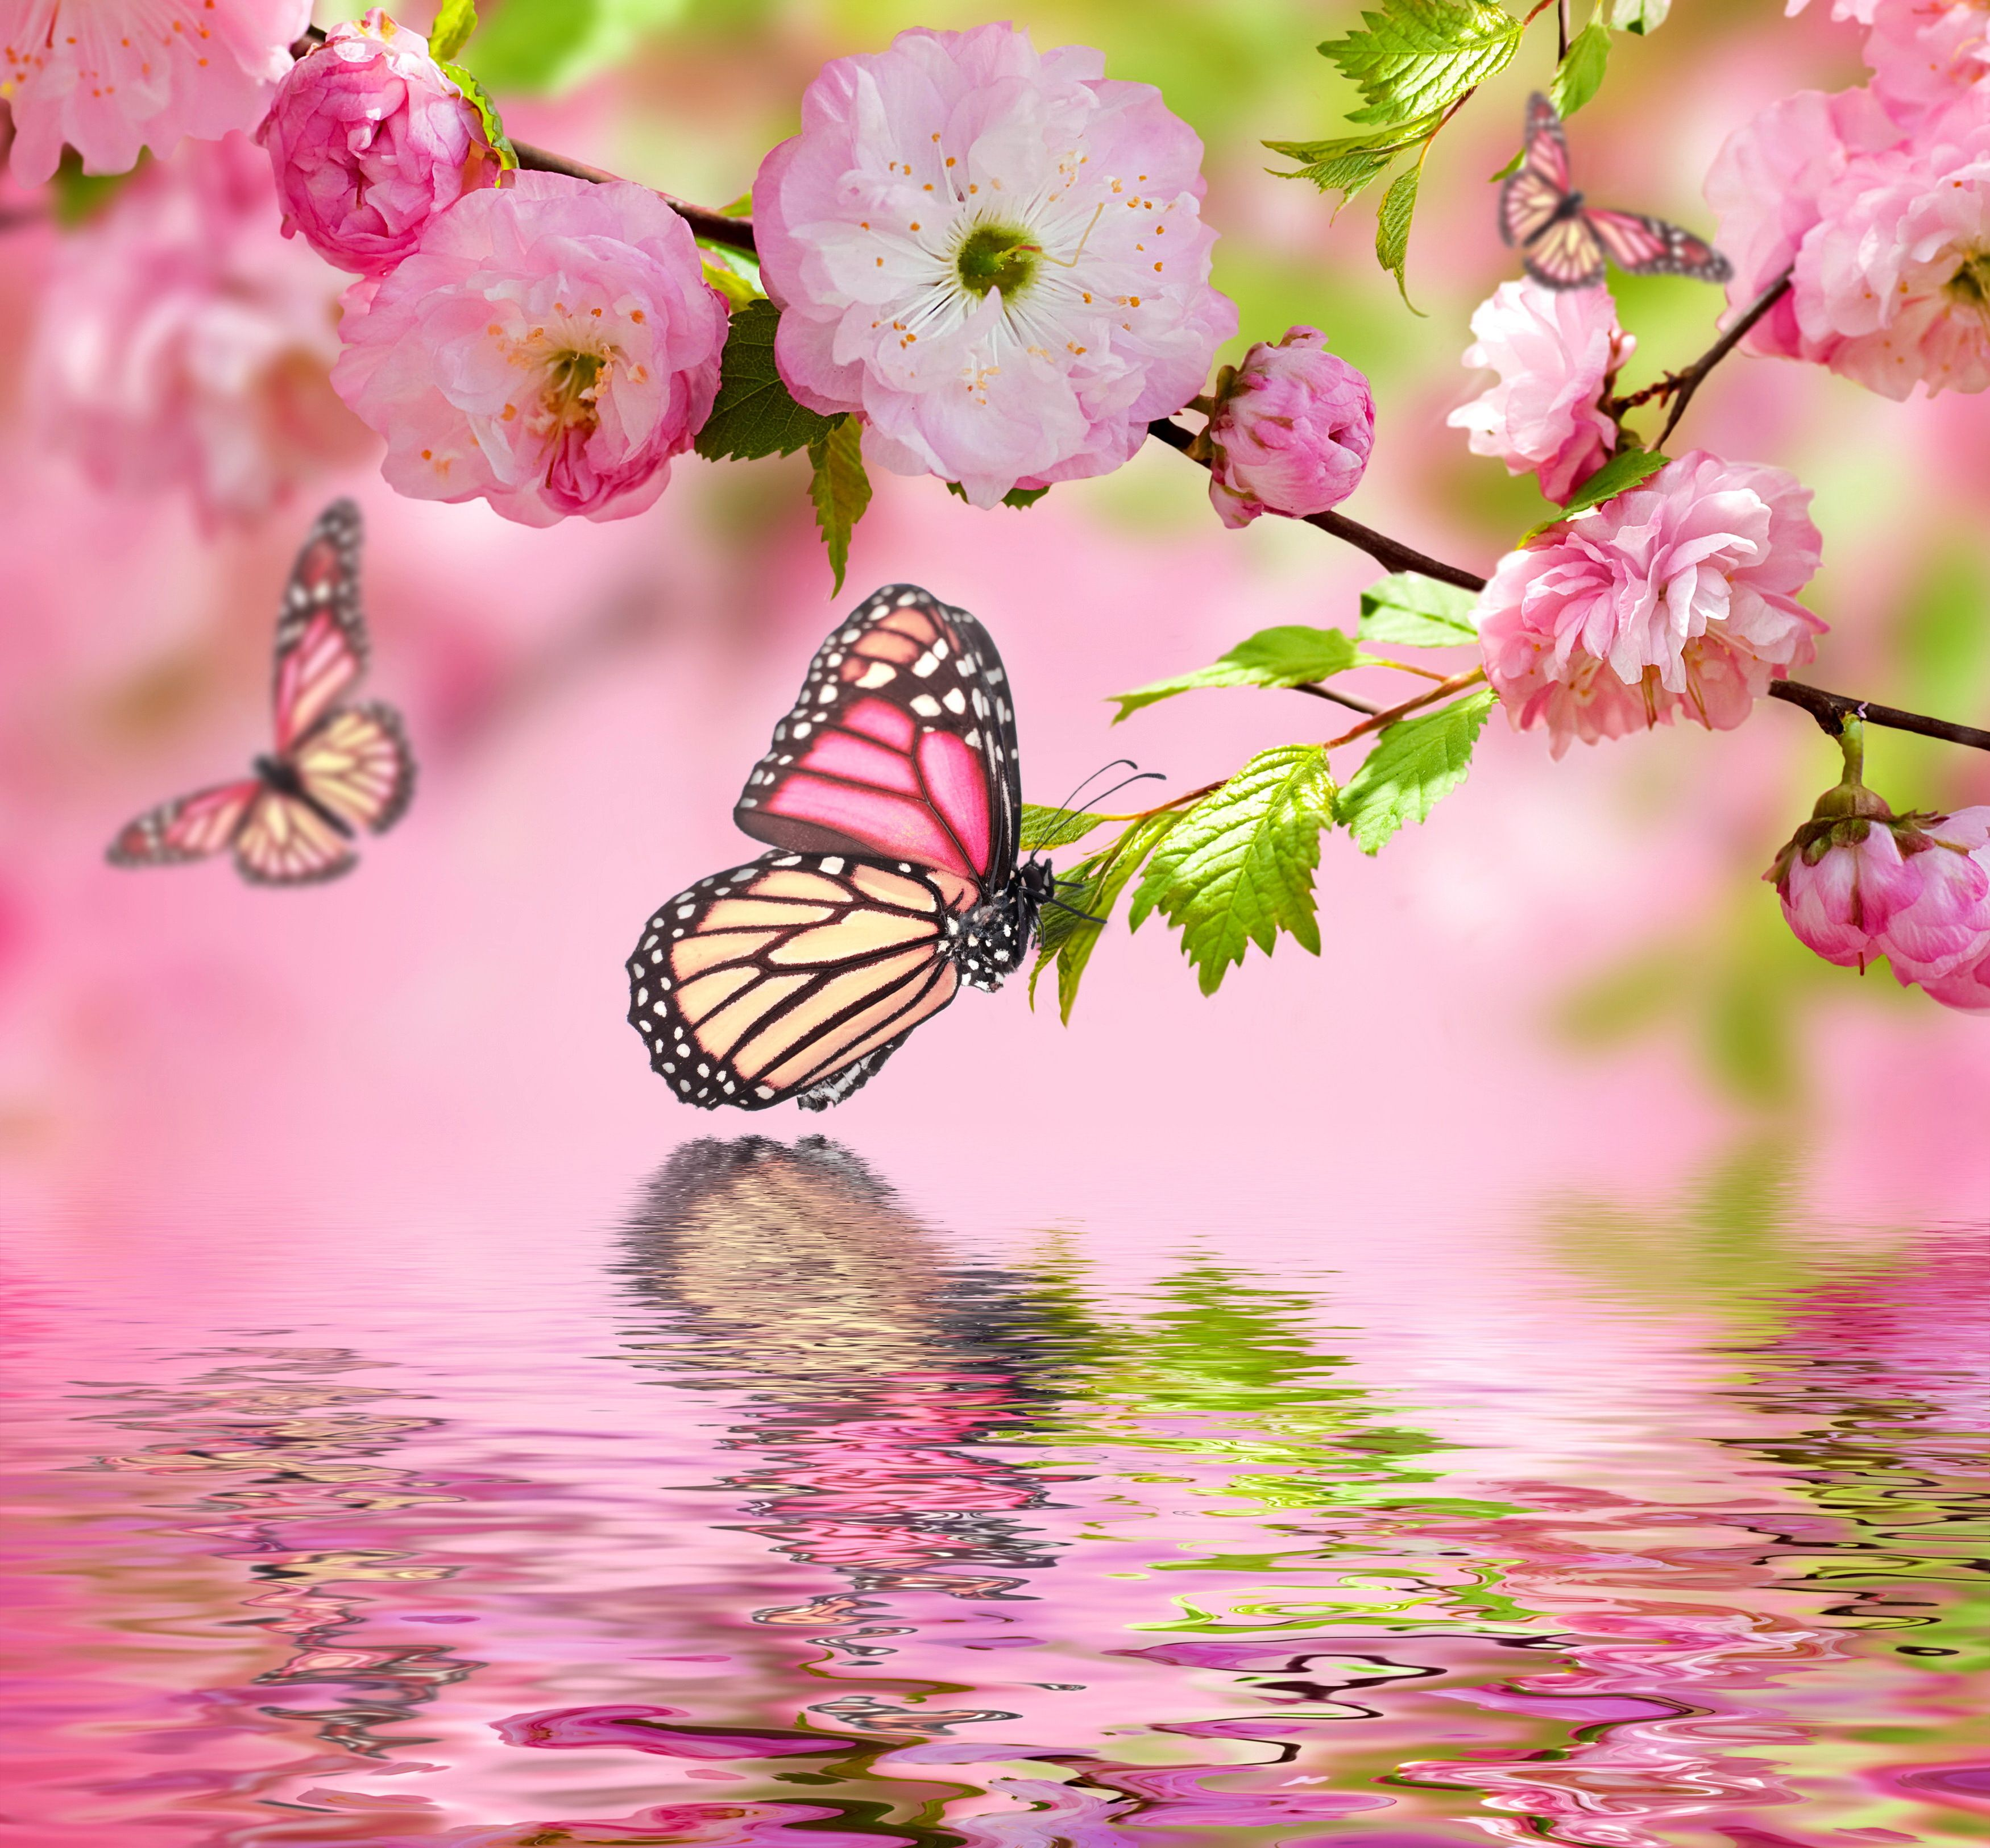 Download wallpaper spring blossom pink flowers butterflies download wallpaper spring blossom pink flowers butterflies mightylinksfo